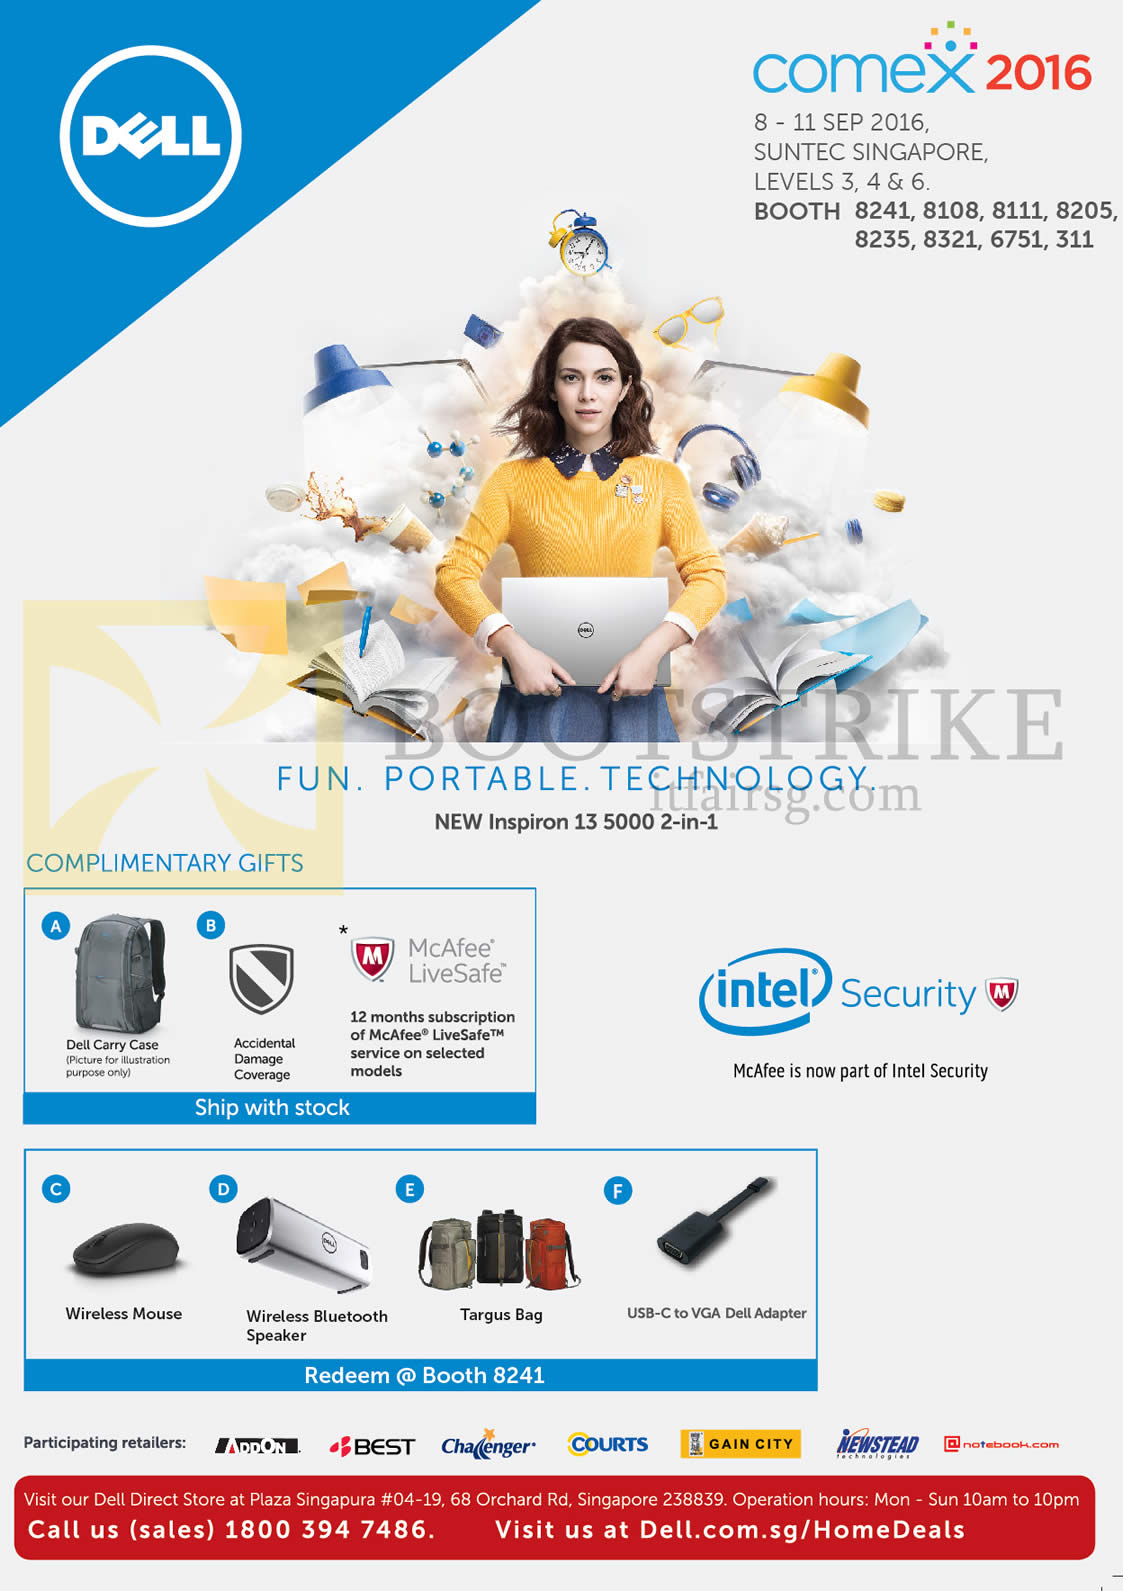 COMEX 2016 price list image brochure of Dell Notebook Inspiron 13 5000, Free Gifts